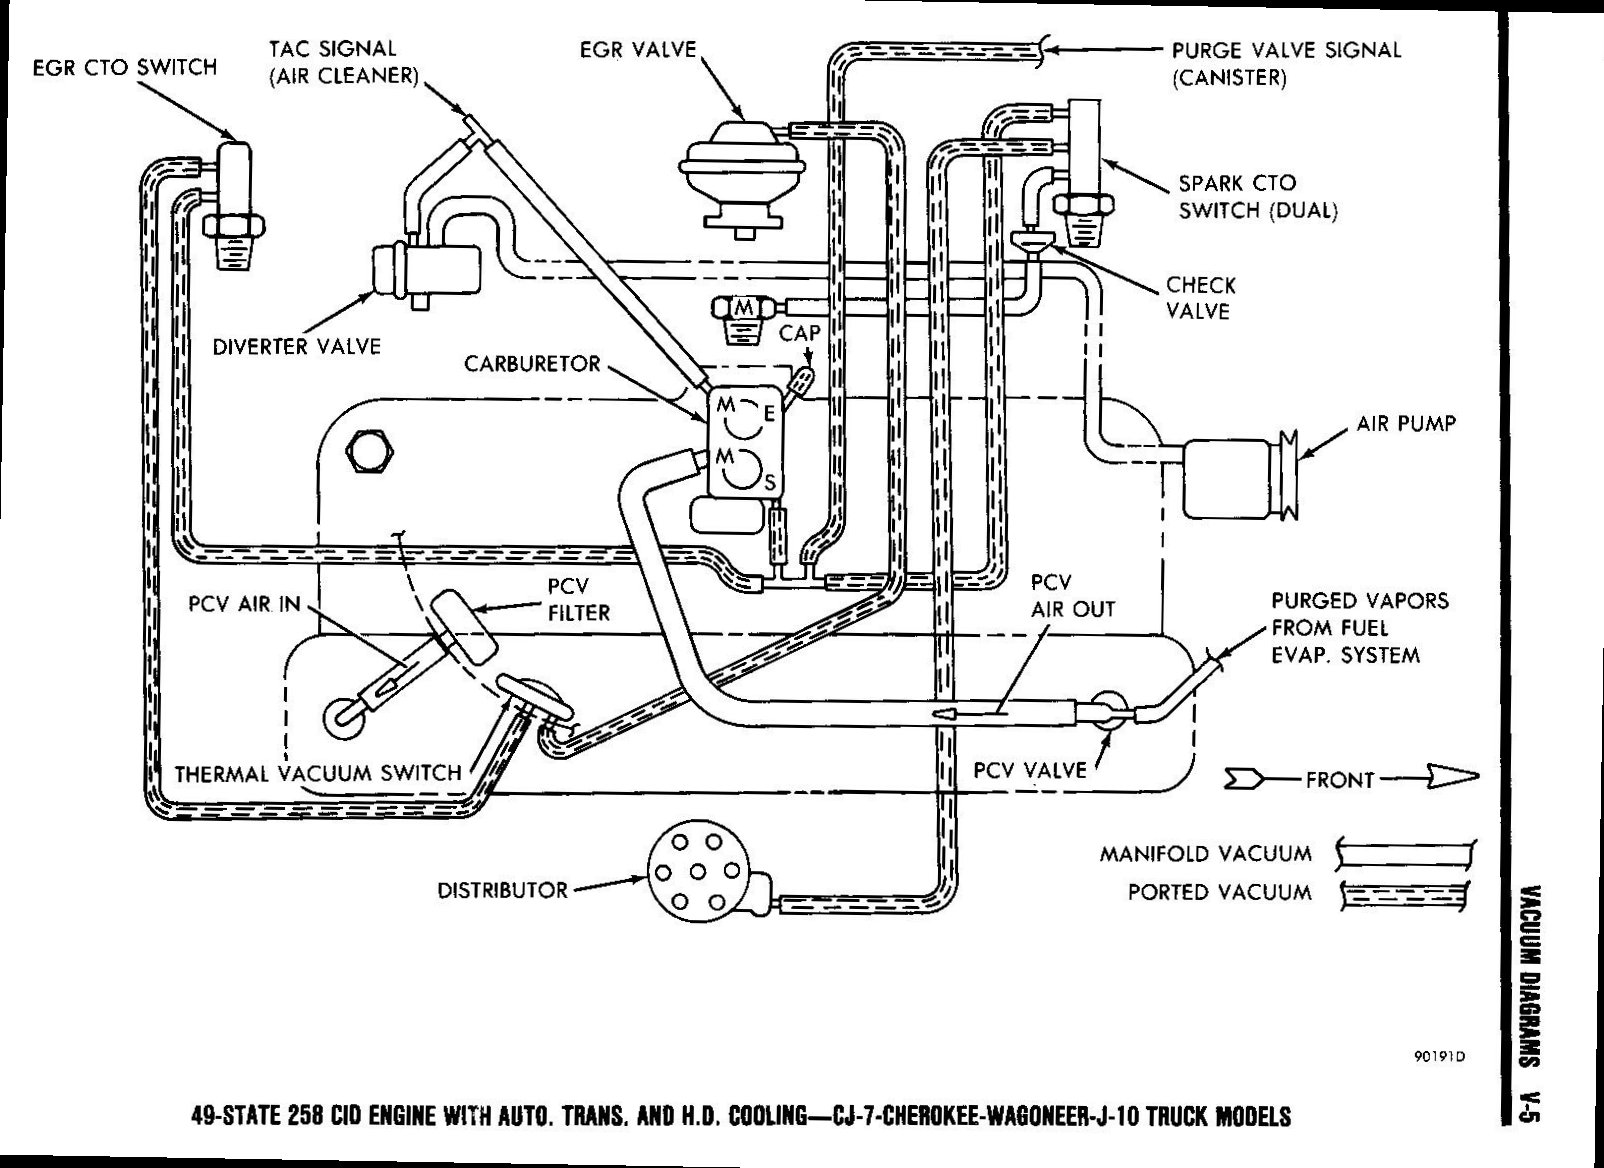 Jeep 360 Engine Diagram | Wiring Liry  Jeep Cj Wiring Diagram on austin seven wiring-diagram, 1986 jeep cj7 wiring-diagram, vw polo wiring-diagram, 79 jeep cj7 wiring-diagram, 1978 jeep cj7 wiring-diagram, 1976 jeep cj7 wiring-diagram, chinese quad wiring-diagram, 1979 jeep wagoneer, 1985 jeep cj7 wiring-diagram, 1982 jeep cj7 wiring-diagram, jeepster commando wiring-diagram, 1981 jeep cj7 258 wiring-diagram, 1984 jeep cj7 wiring-diagram, 1980 jeep cj7 wiring-diagram, 84 jeep cj7 wiring-diagram, garage wiring-diagram, austin healey sprite wiring-diagram, 1979 jeep cj5 fuse box, 7 pin trailer lights wiring-diagram, electric choke wiring-diagram,